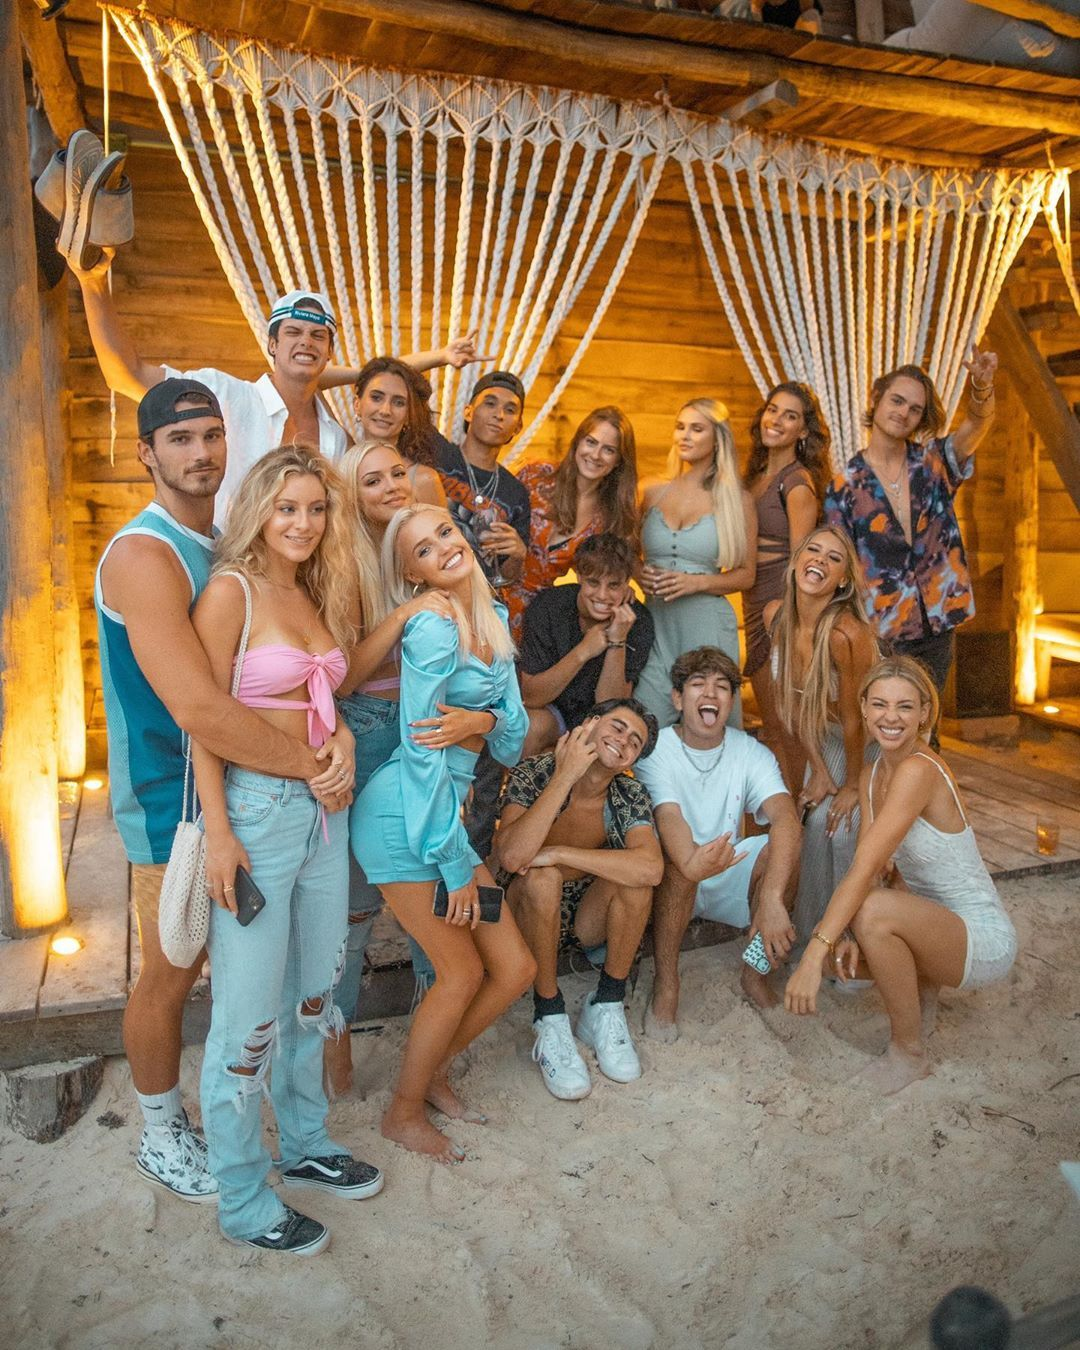 Many Talent Agencies Are Forming Tiktok Houses Throughout La These Huge Companies Recruit Big Tiktok Stars Rent Out A Travel Fun Club House Celebrity Houses